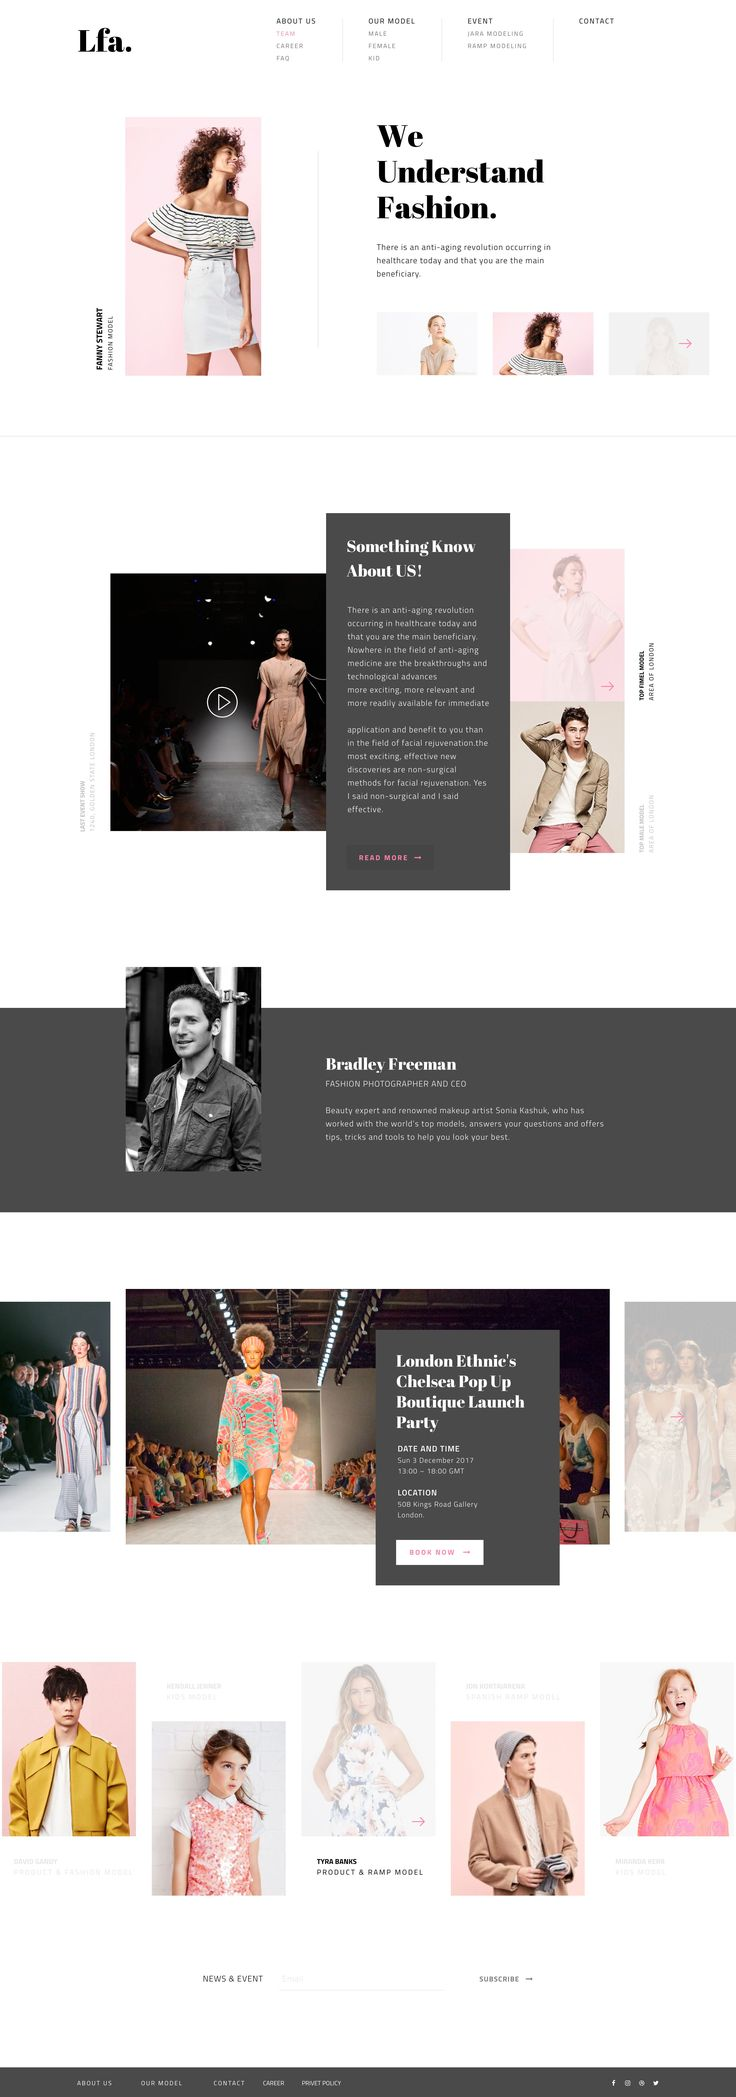 https://www.uplabs.com/posts/free-free-fashion-agency-web-template